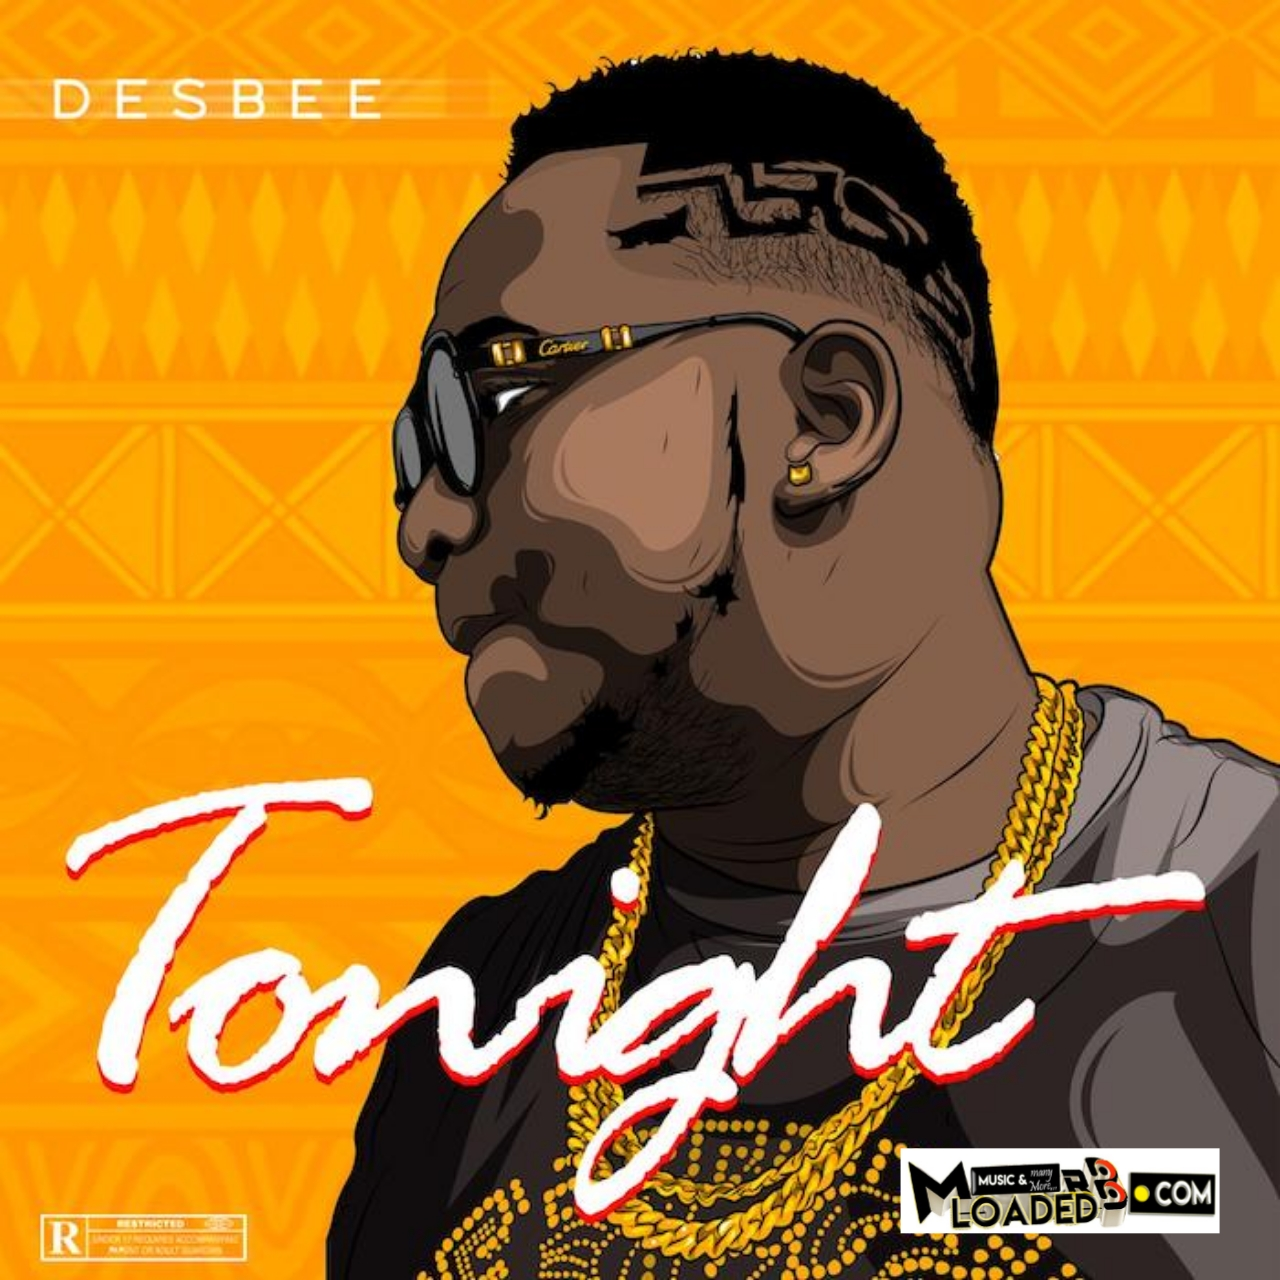 [Music] Desbee – Tonight